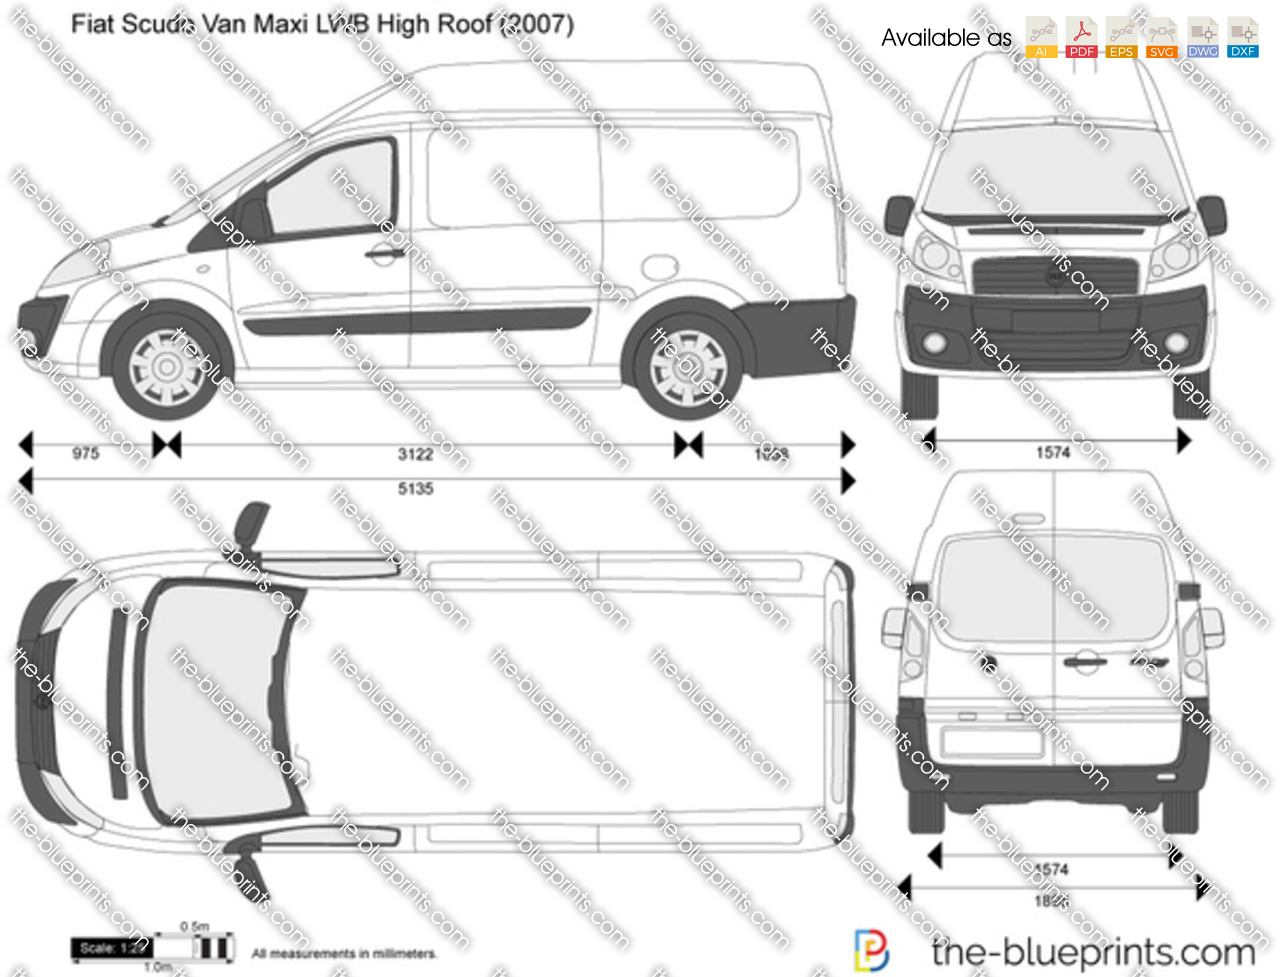 fiat scudo van maxi lwb high roof vector drawing. Black Bedroom Furniture Sets. Home Design Ideas